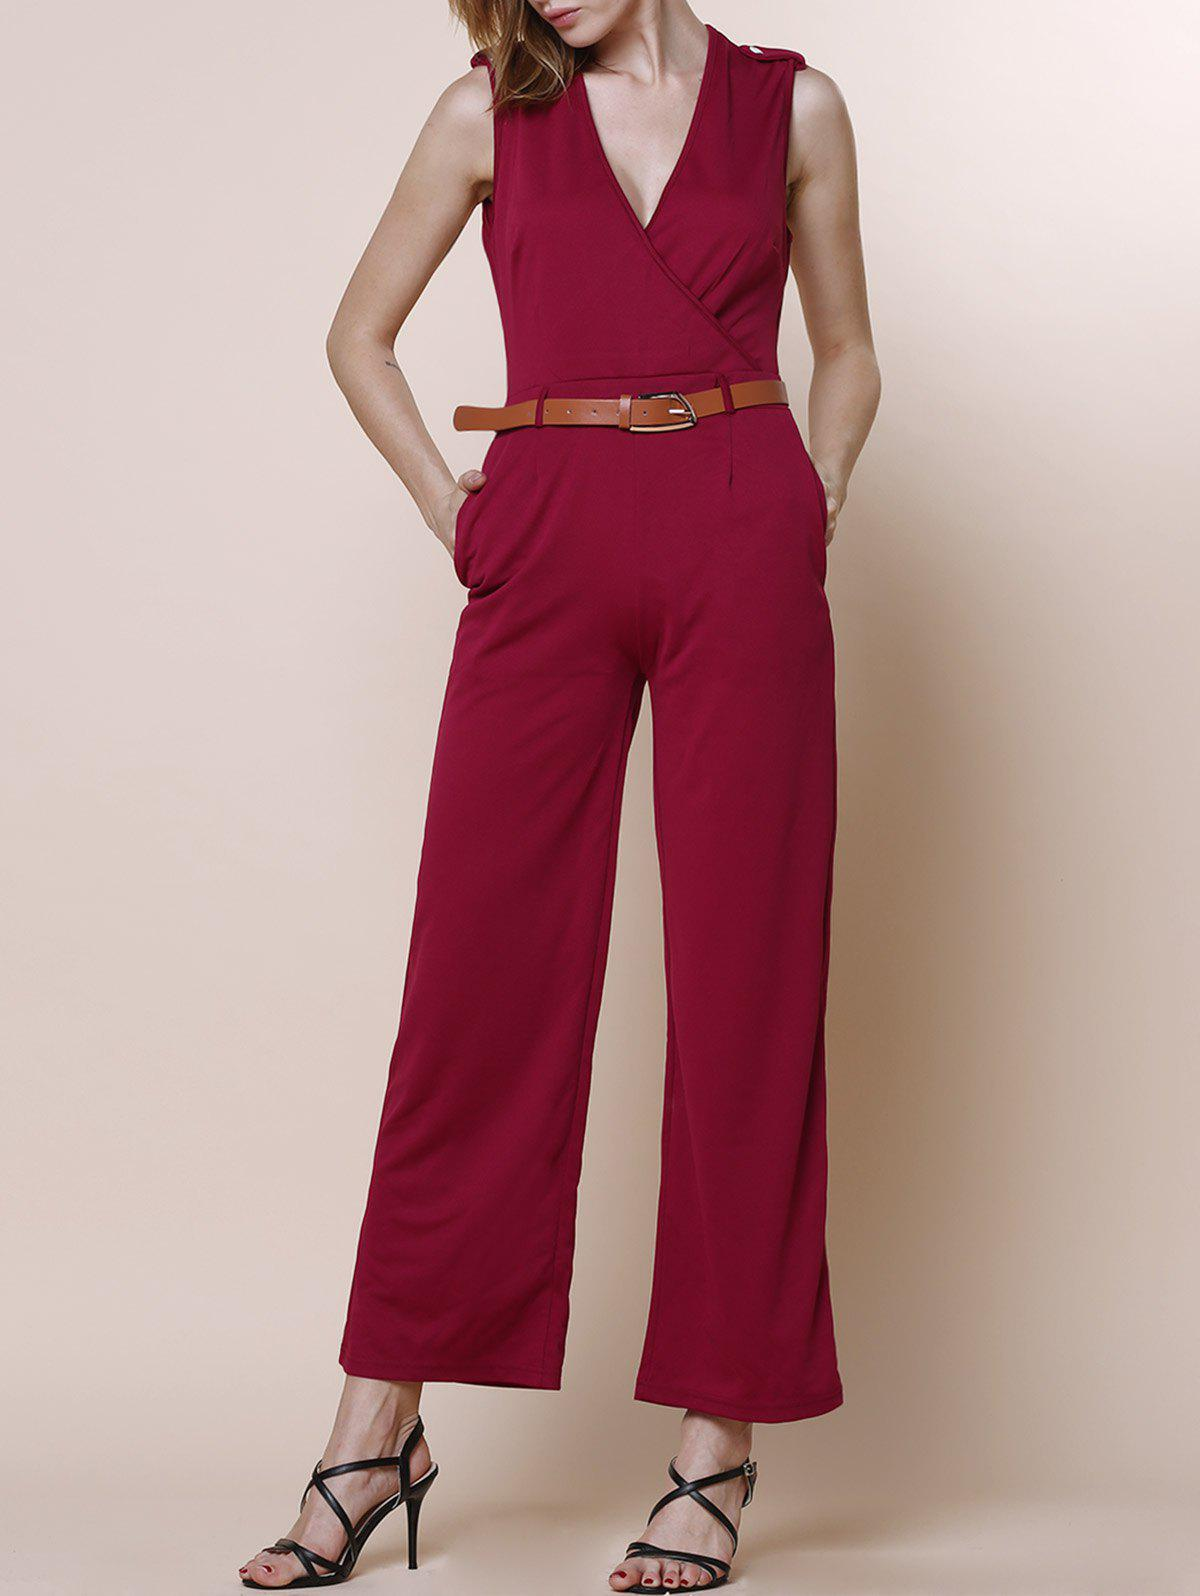 V-Neck Sleeveless Pure Color Jumpsuit For Women